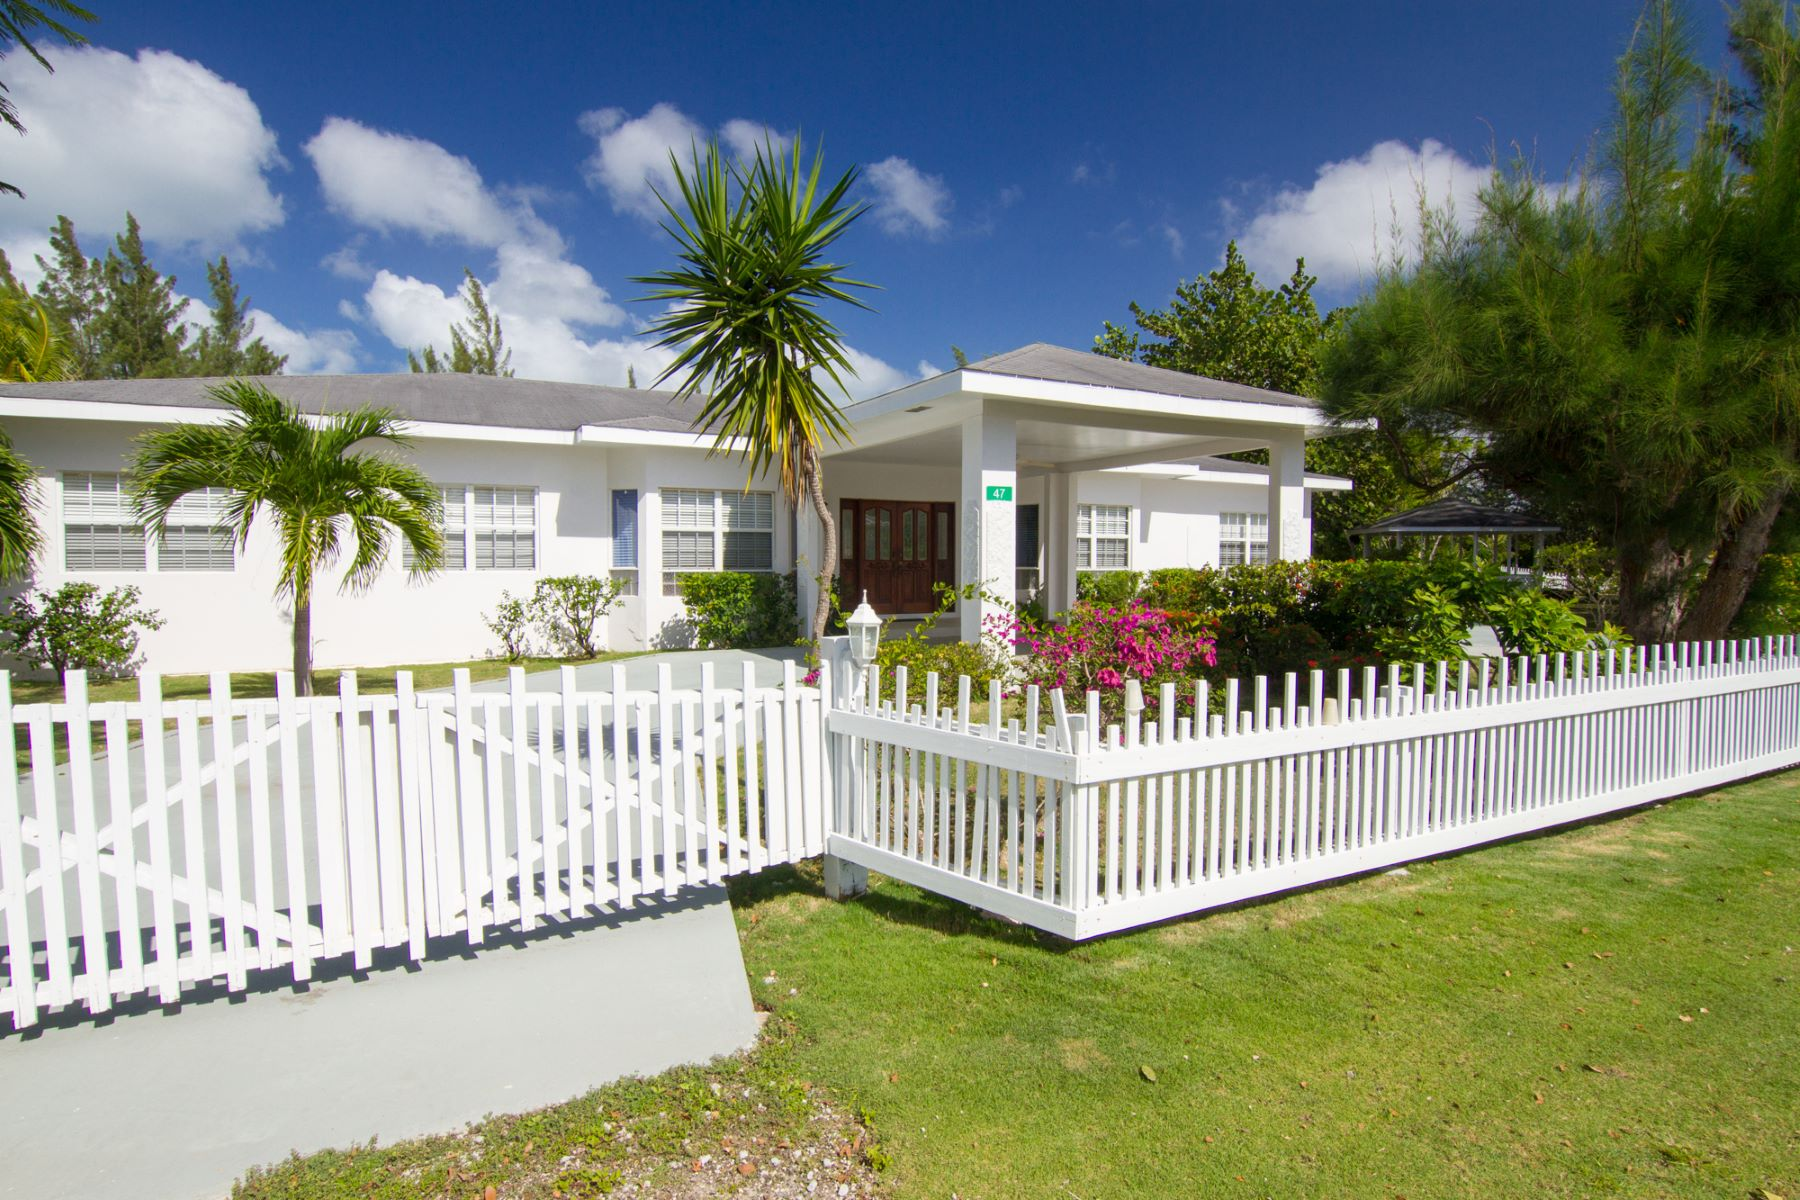 Single Family Home for Rent at Spacious Family home on double lot Satinwood St #47 George Town, KY1 Cayman Islands